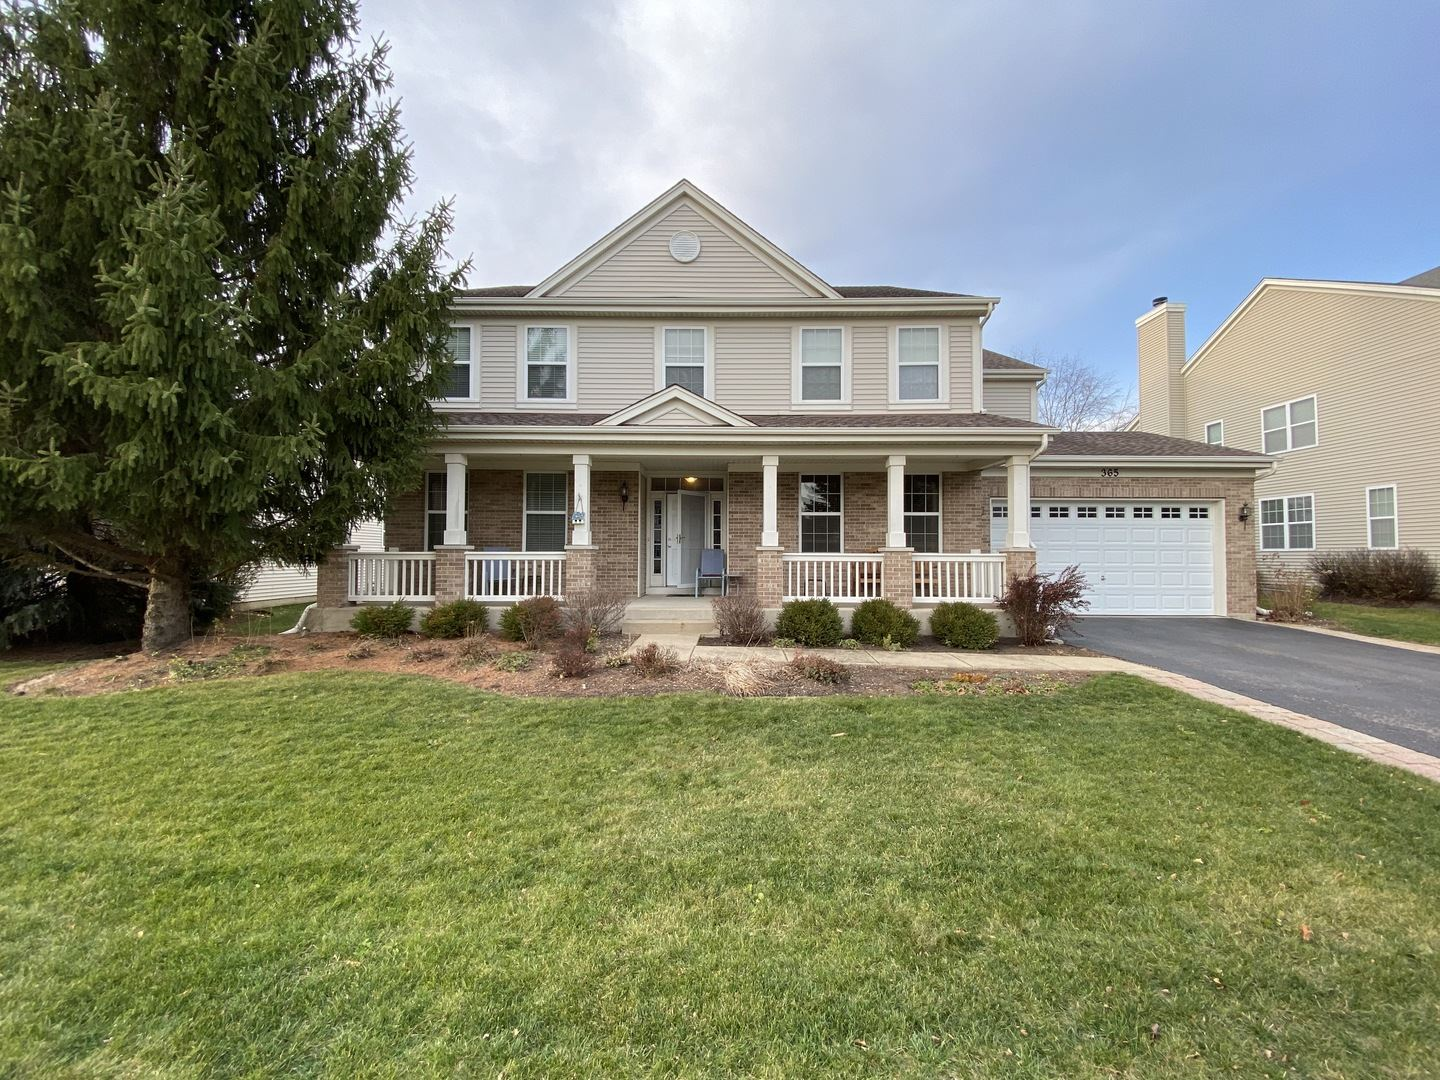 365 MERION Drive, Cary, IL 60013 - #: 10937005